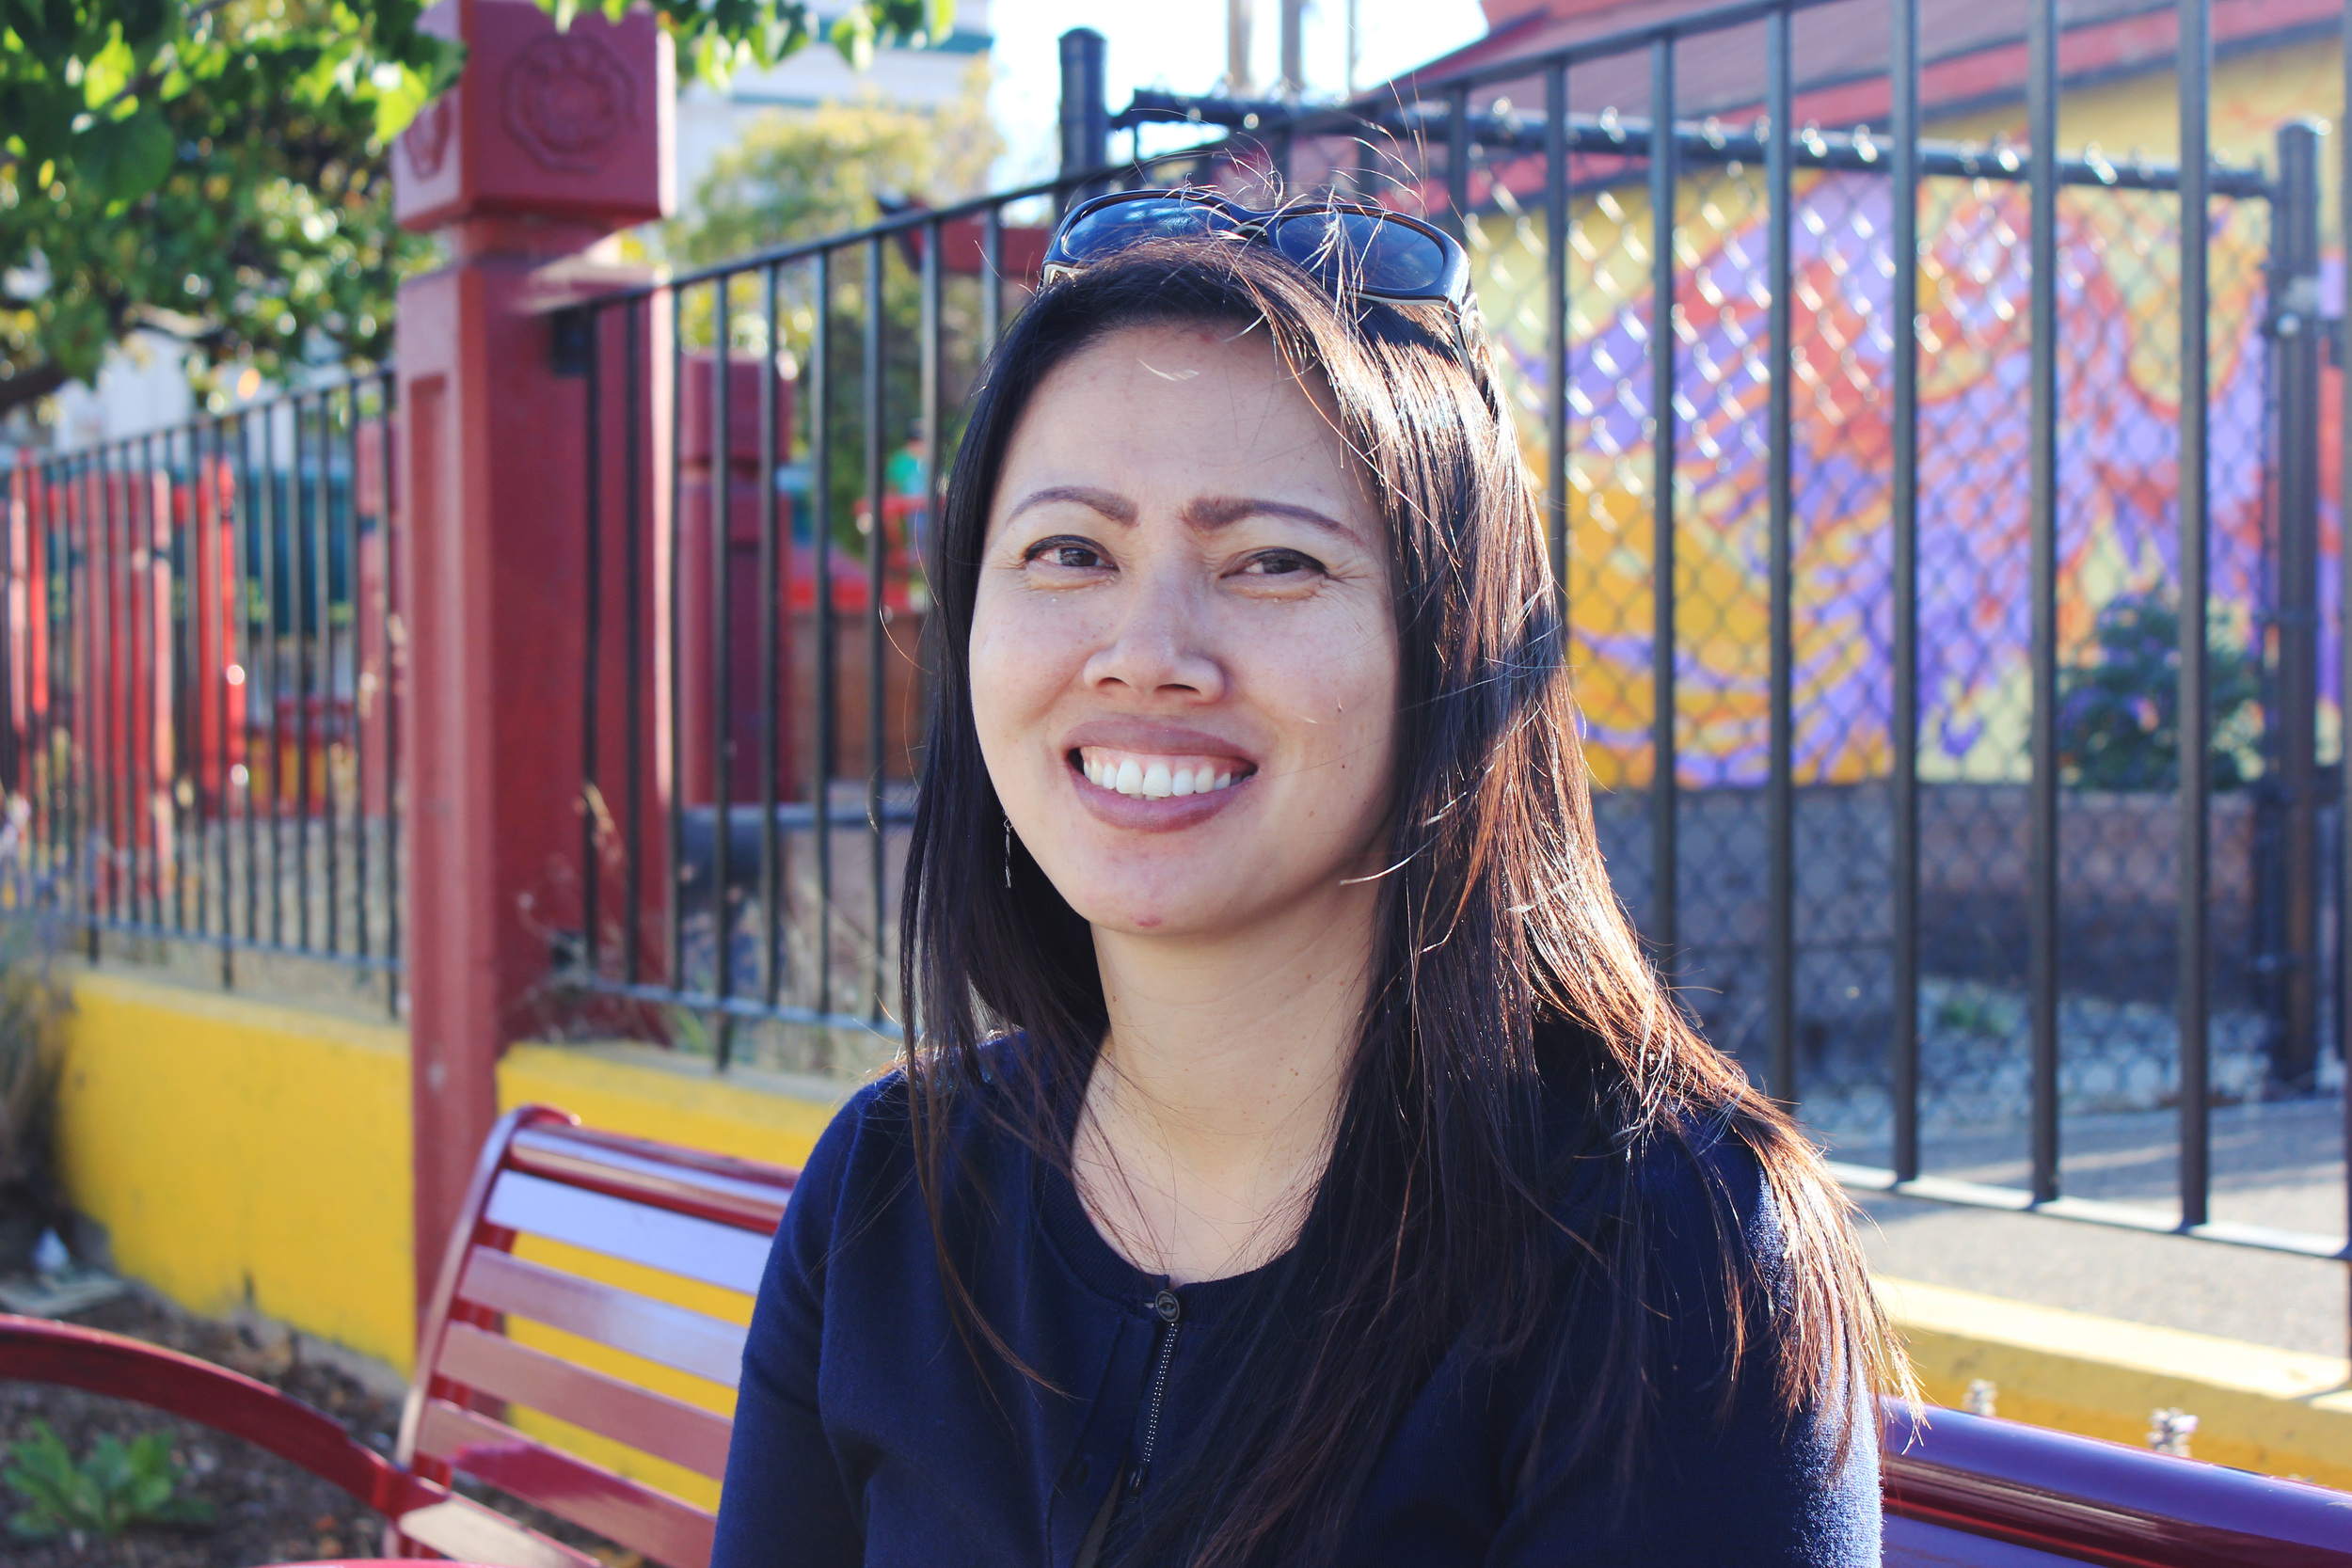 """""""I feel like it's part of Oakland — this racial makeup of Chinese and Vietnamese here. It's just easy being who I am here. I don't feel out of place.""""  — Han Fan"""